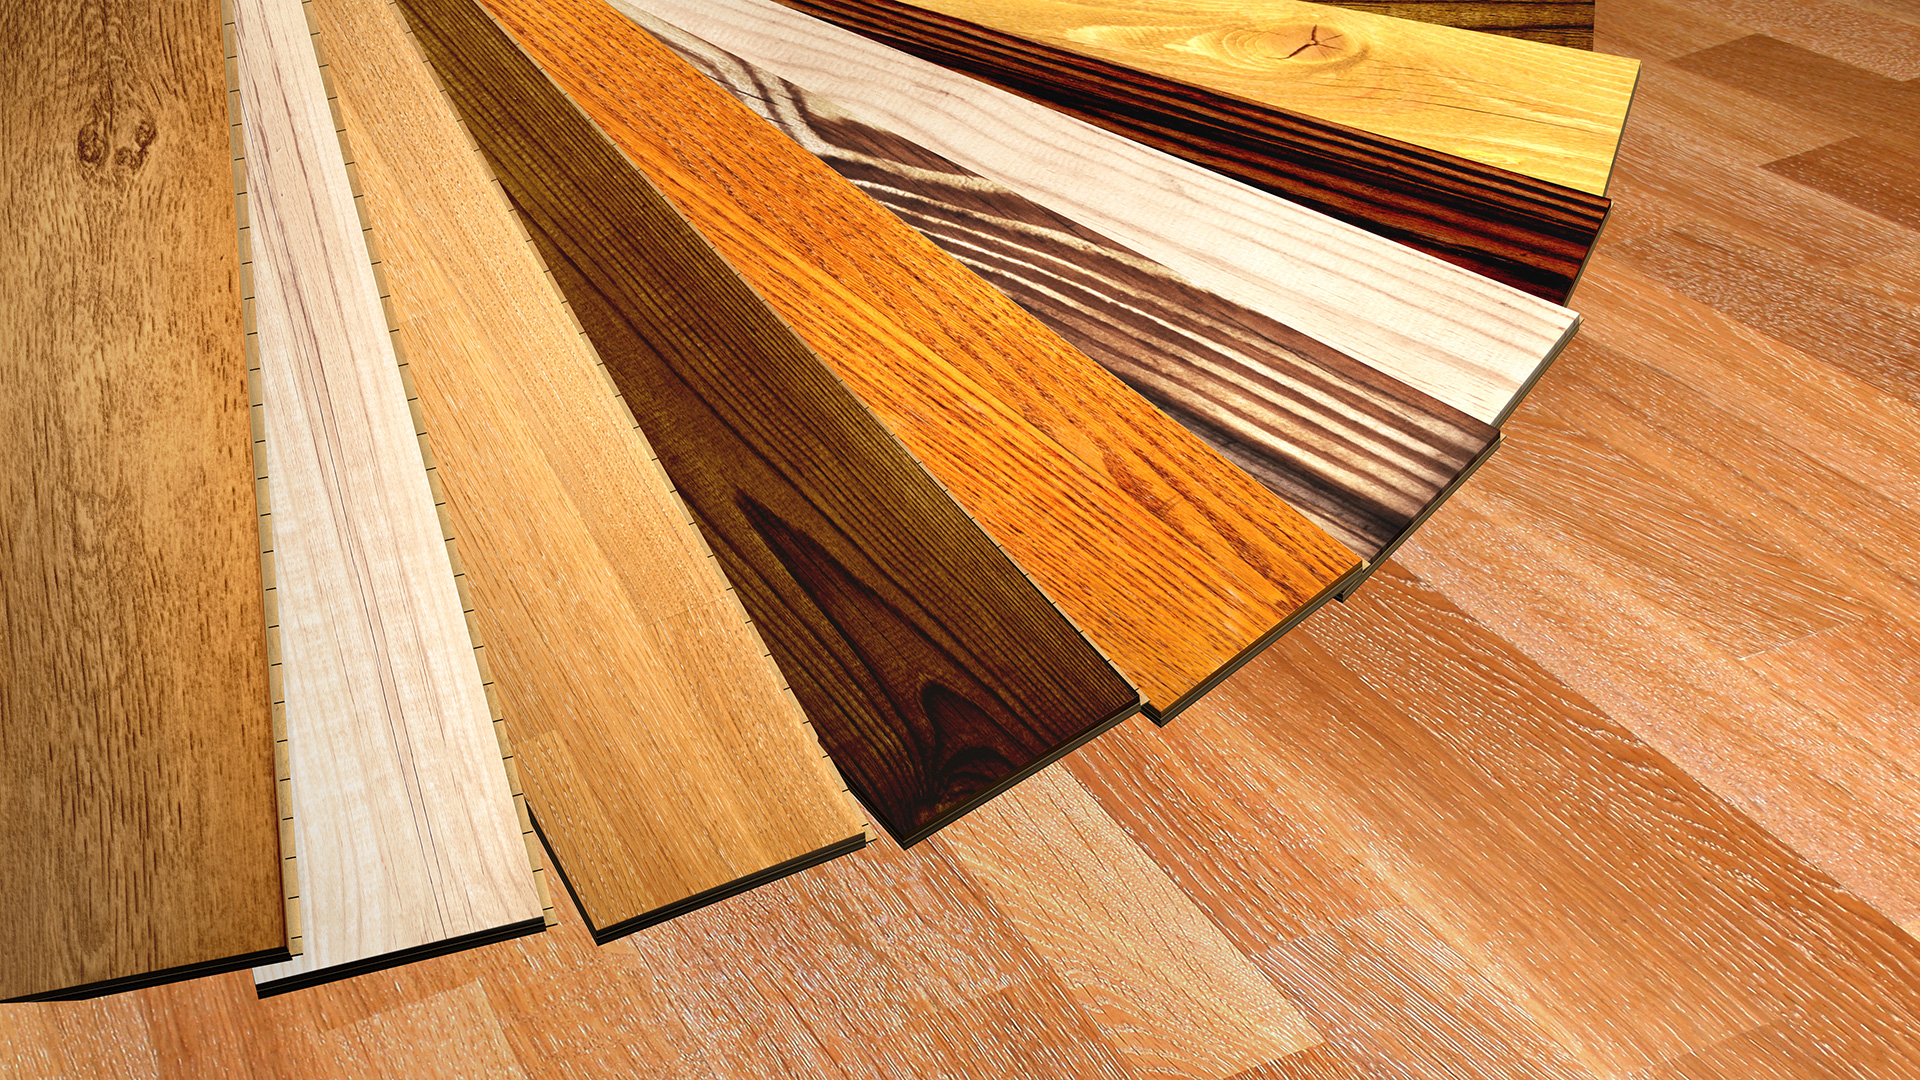 Flooring Company Fined Fbi